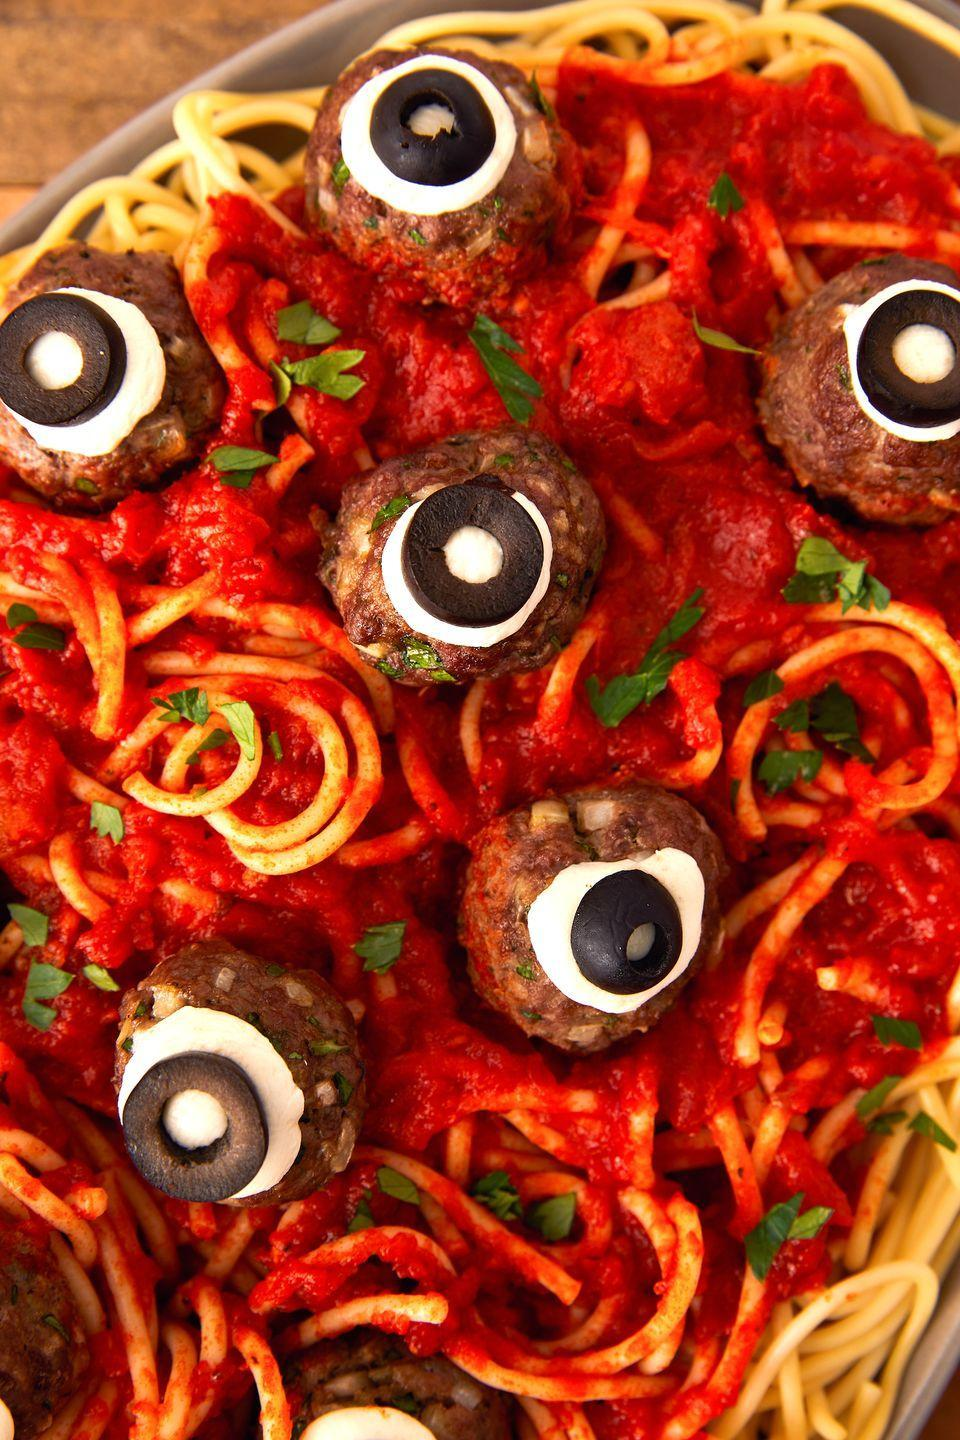 "<p>Meatballs become eyeballs on Halloween!</p><p>Get the recipe from <a href=""https://www.delish.com/cooking/recipe-ideas/a23712888/eyeball-pasta-halloween-dinner-recipe/"" rel=""nofollow noopener"" target=""_blank"" data-ylk=""slk:Delish"" class=""link rapid-noclick-resp"">Delish</a>. </p>"